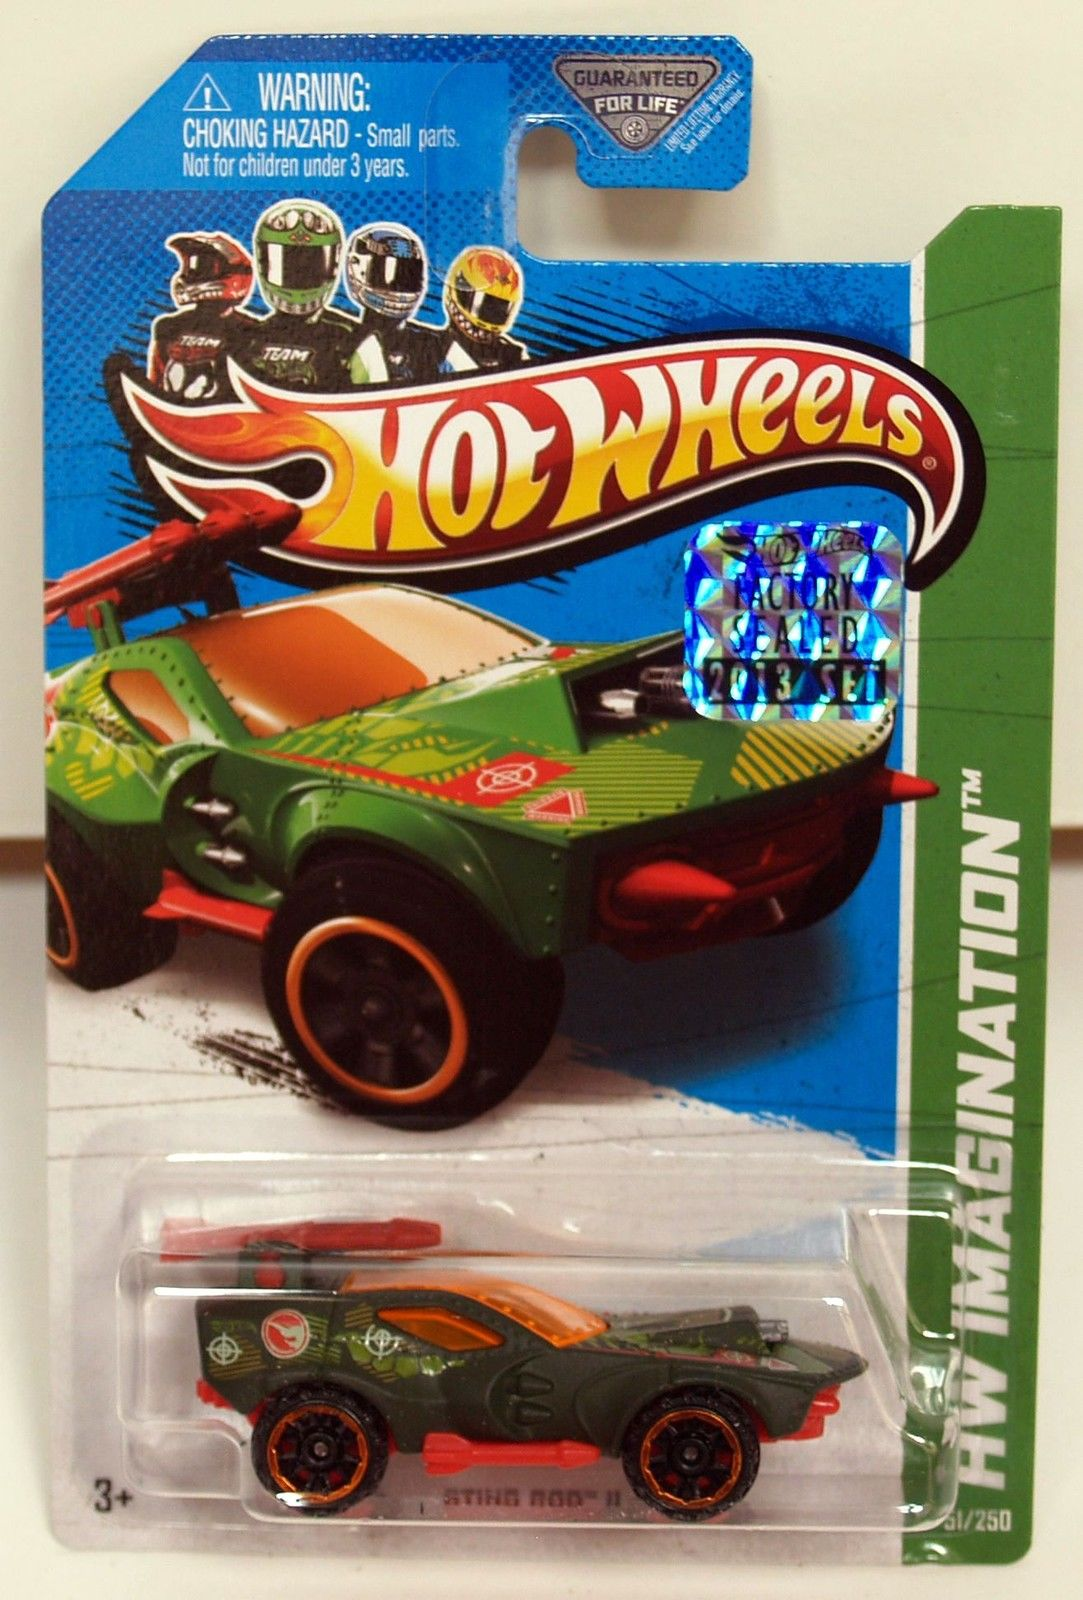 HOT WHEELS 2013 HW IMAGINATION REGULAR TREASURE HUNT STING ROD II FACTORY SEALED